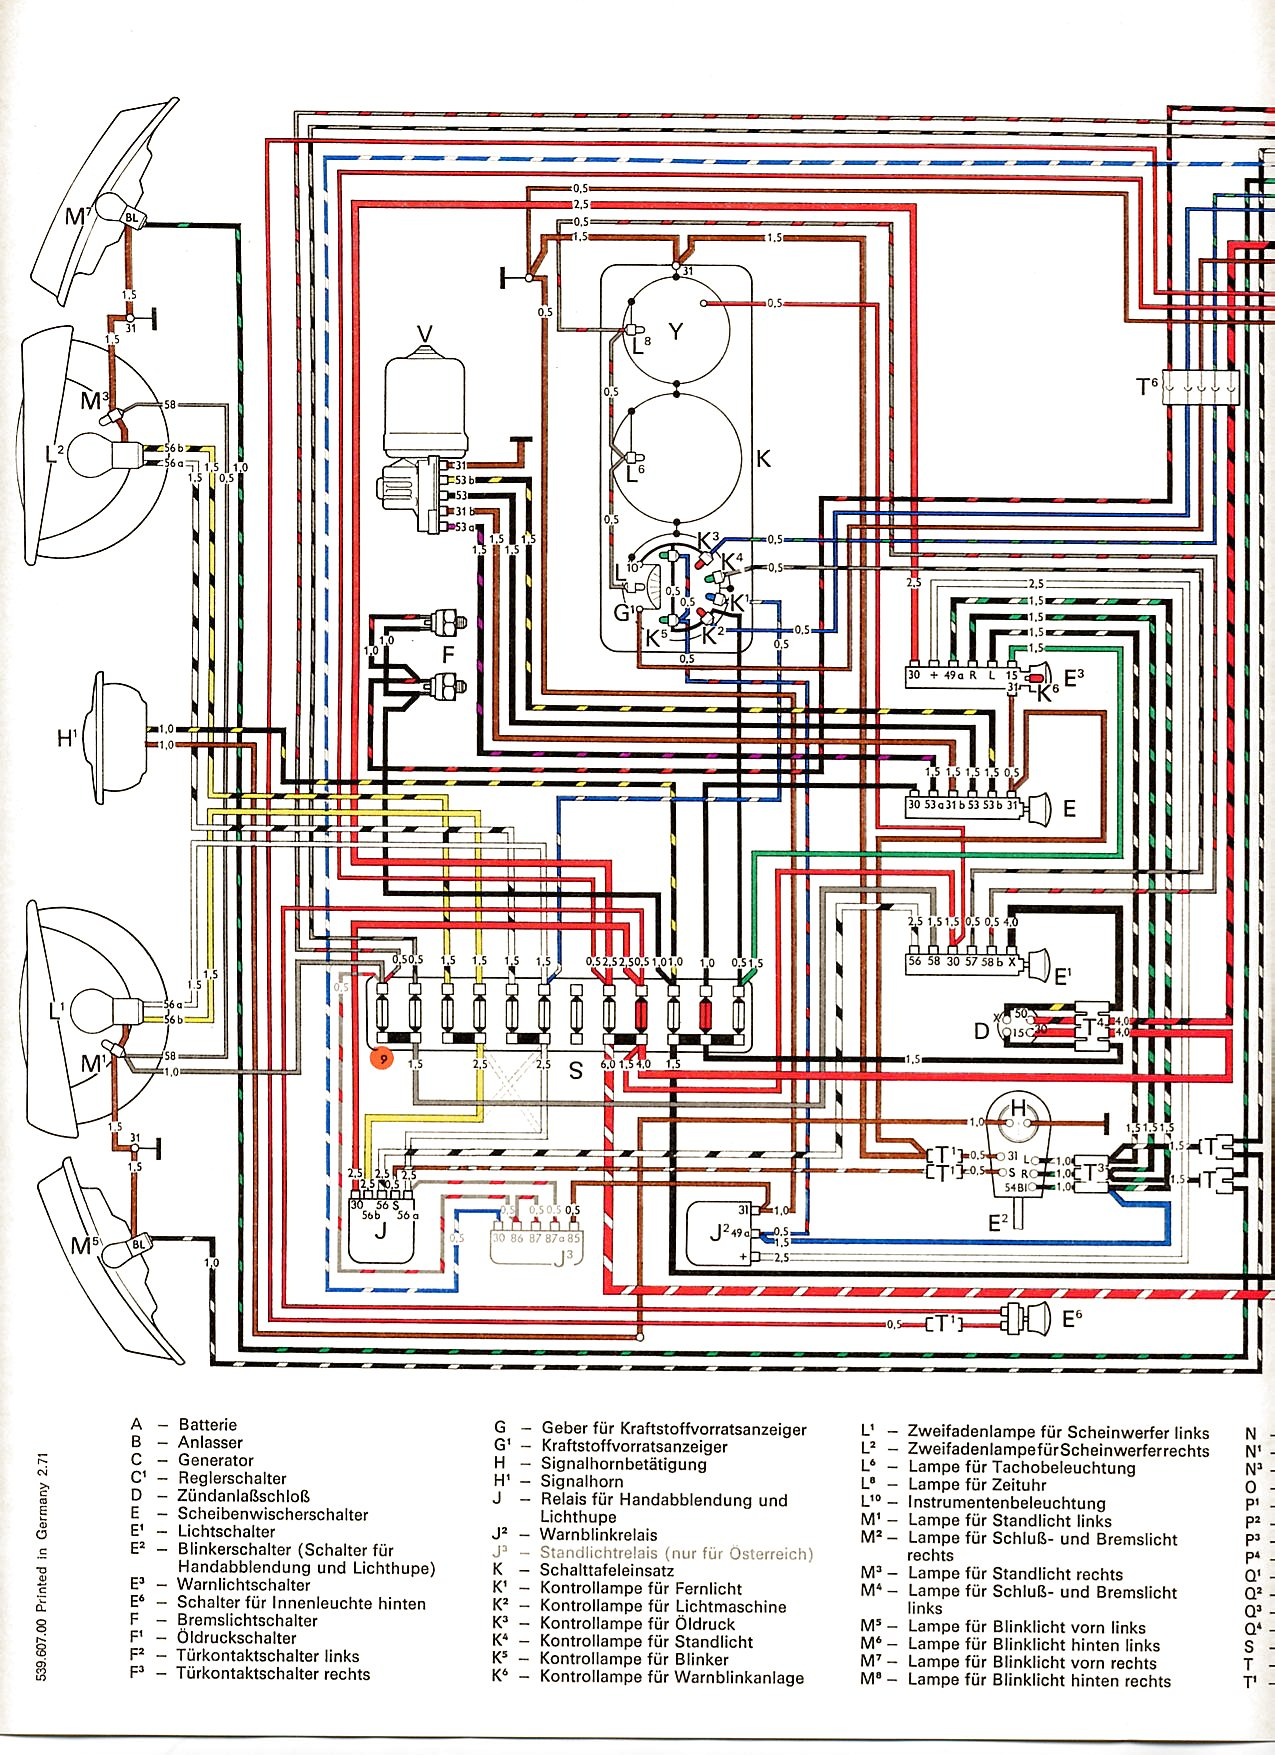 Amazing Vw T5 Wiring Diagram Vignette - Electrical Diagram Ideas ...